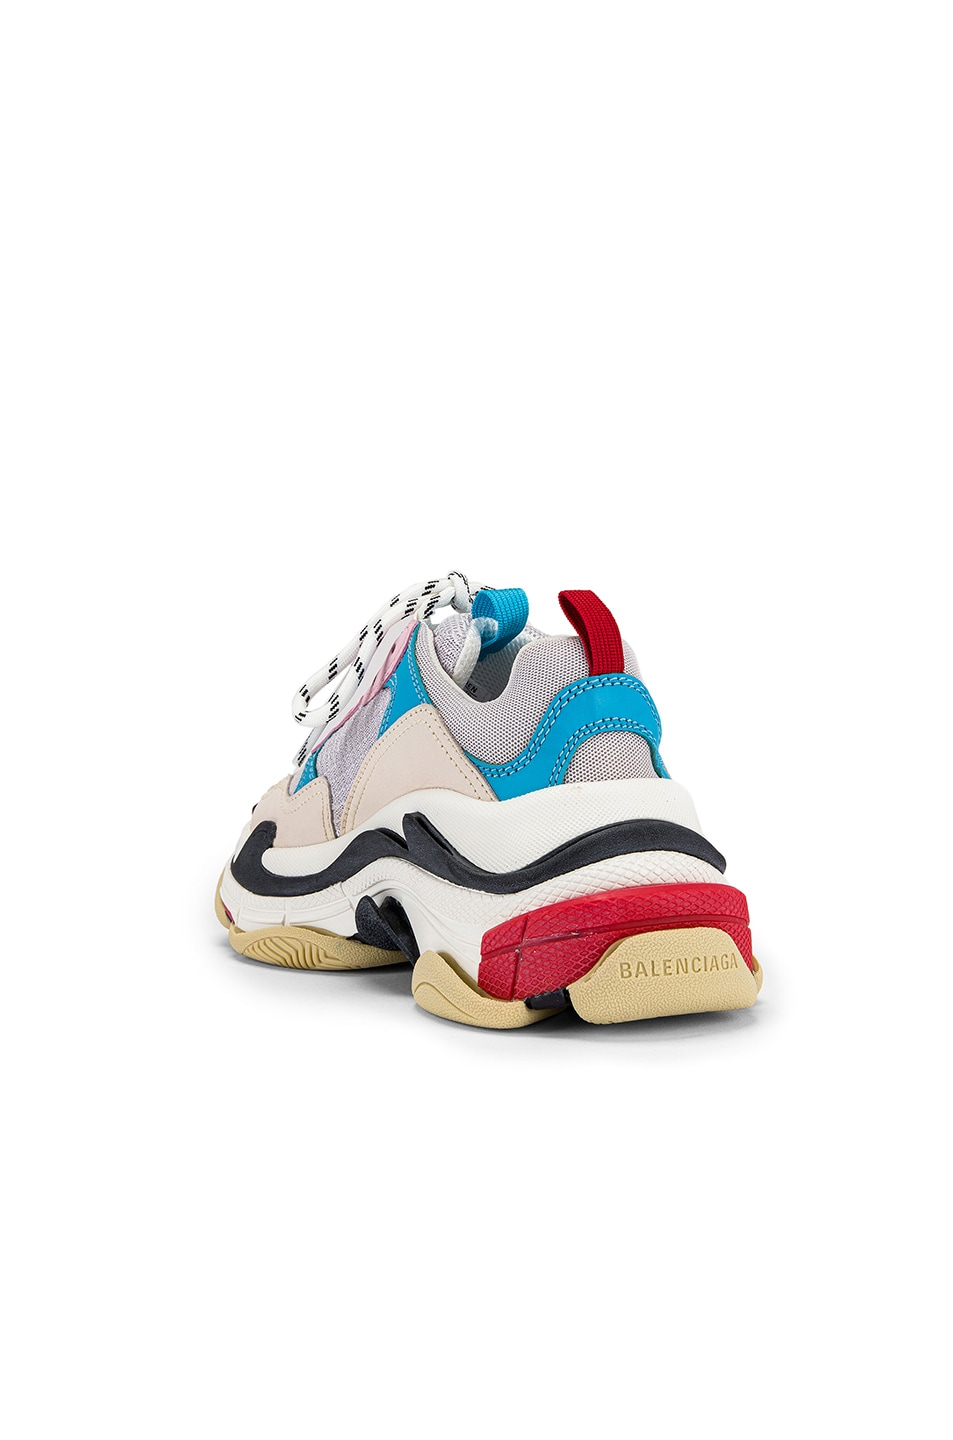 Image 3 of Balenciaga Triple S Sneakers in White & Blue